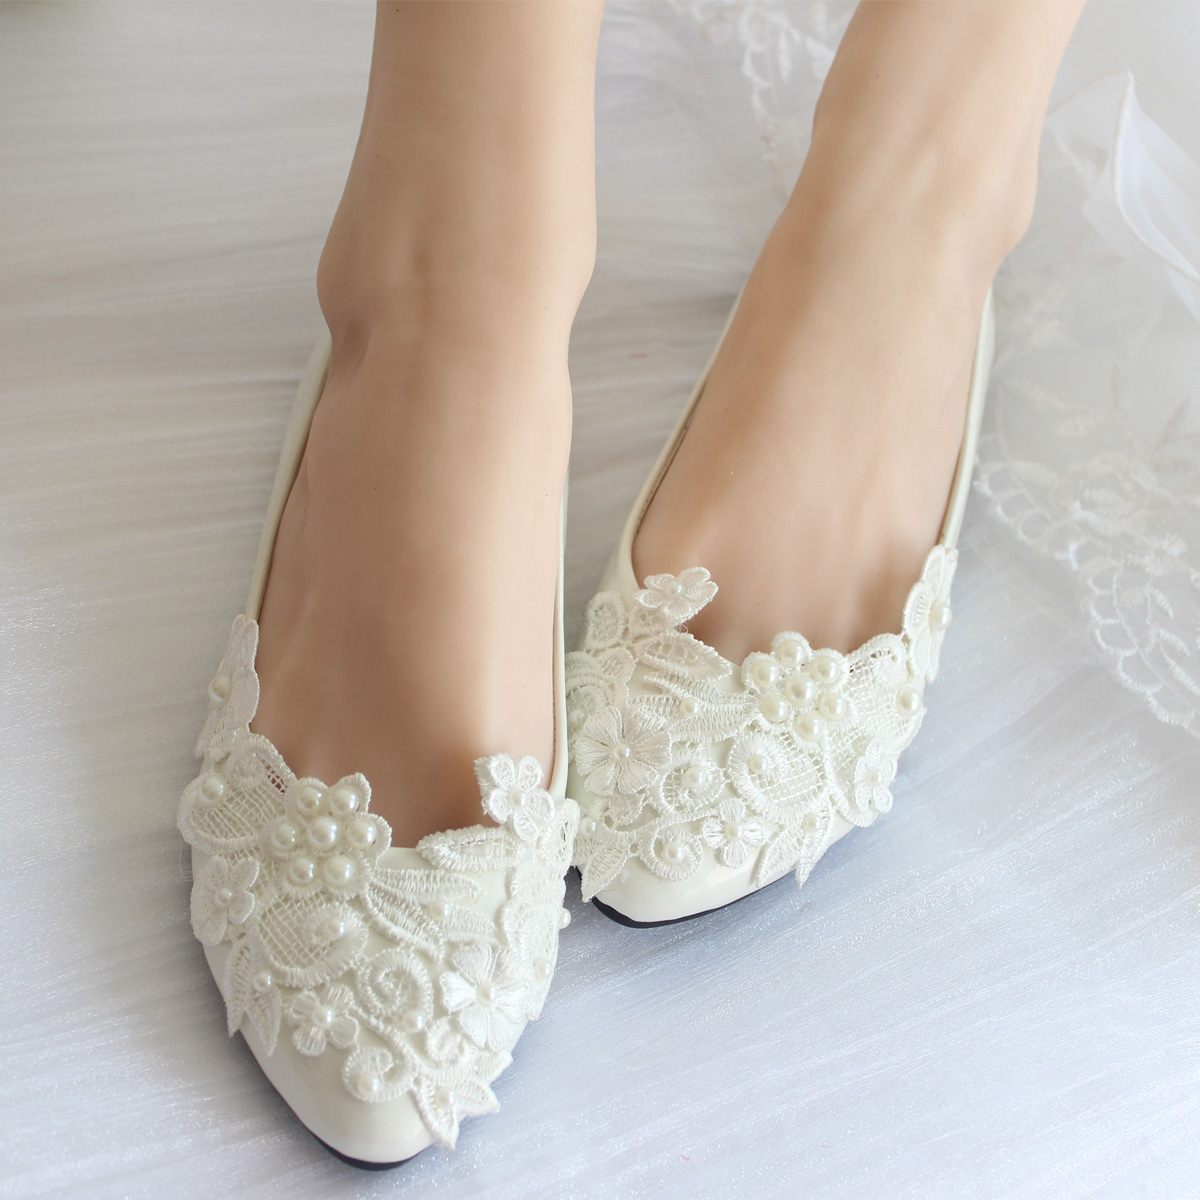 Aliexpress Buy Pearl Lace Wedding Shoes White Handmade Bridal Bridesmaid Shoes Women